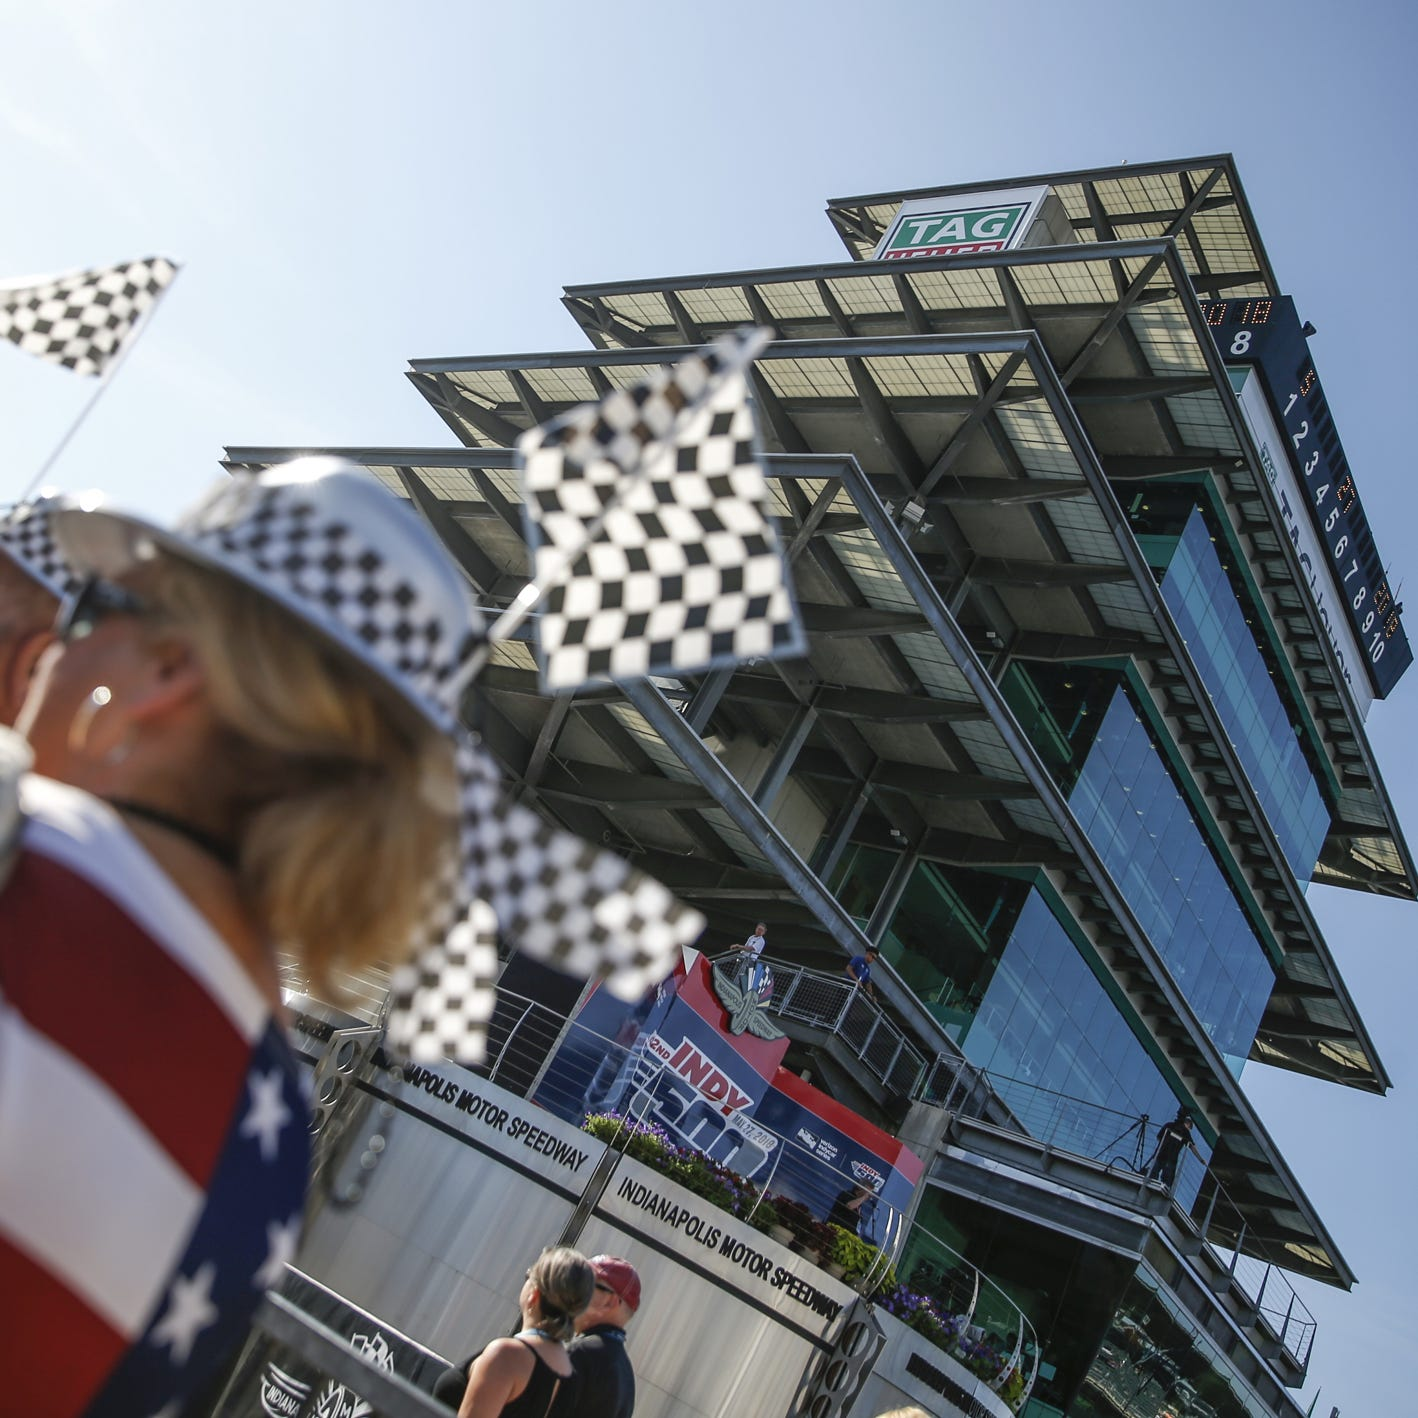 Indy 500 2019: 'I believe it will be a better race'